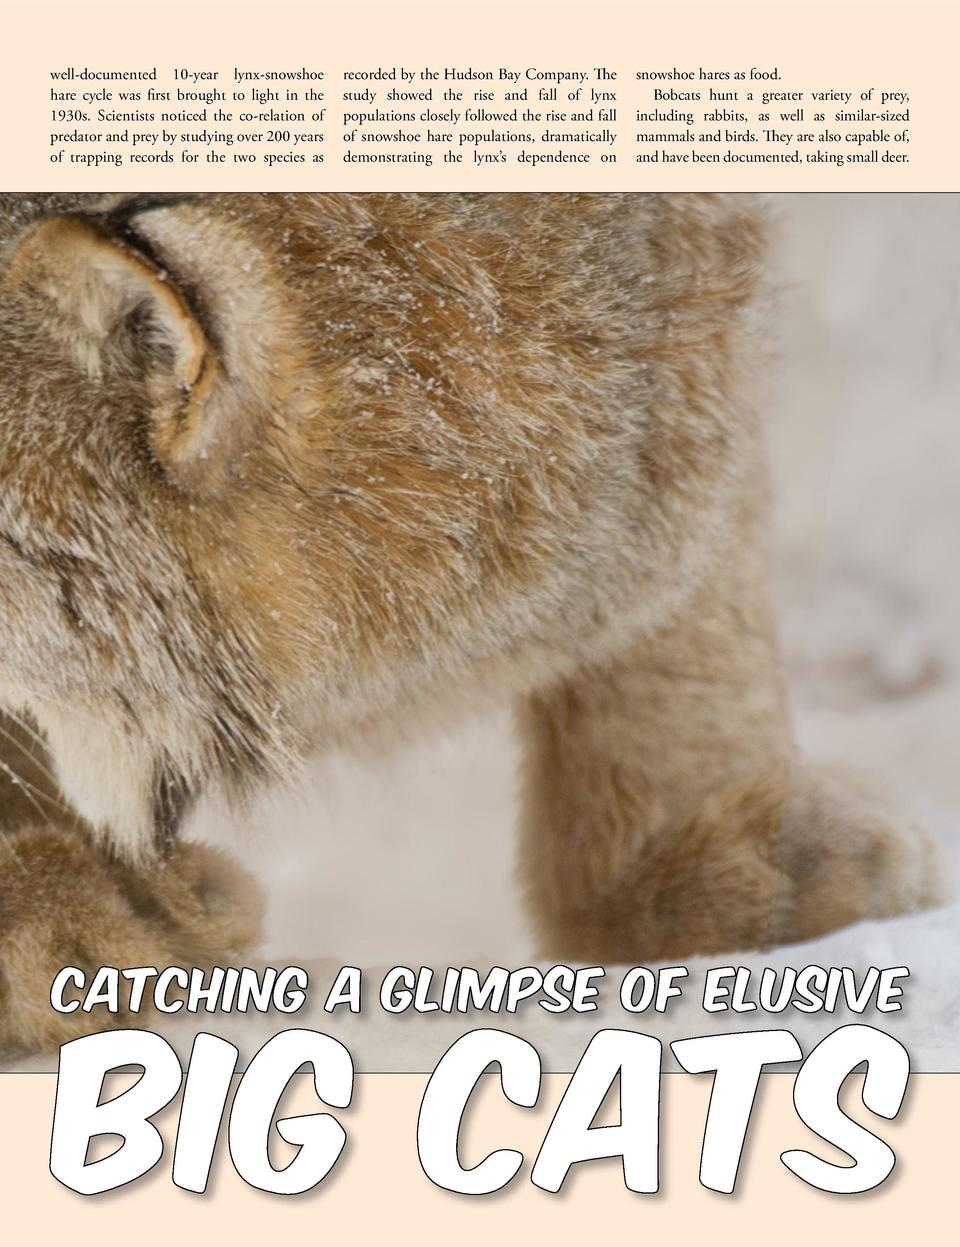 well-documented 10-year lynx-snowshoe hare cycle was first brought to light in the 1930s. Scientists noticed the co-relati...